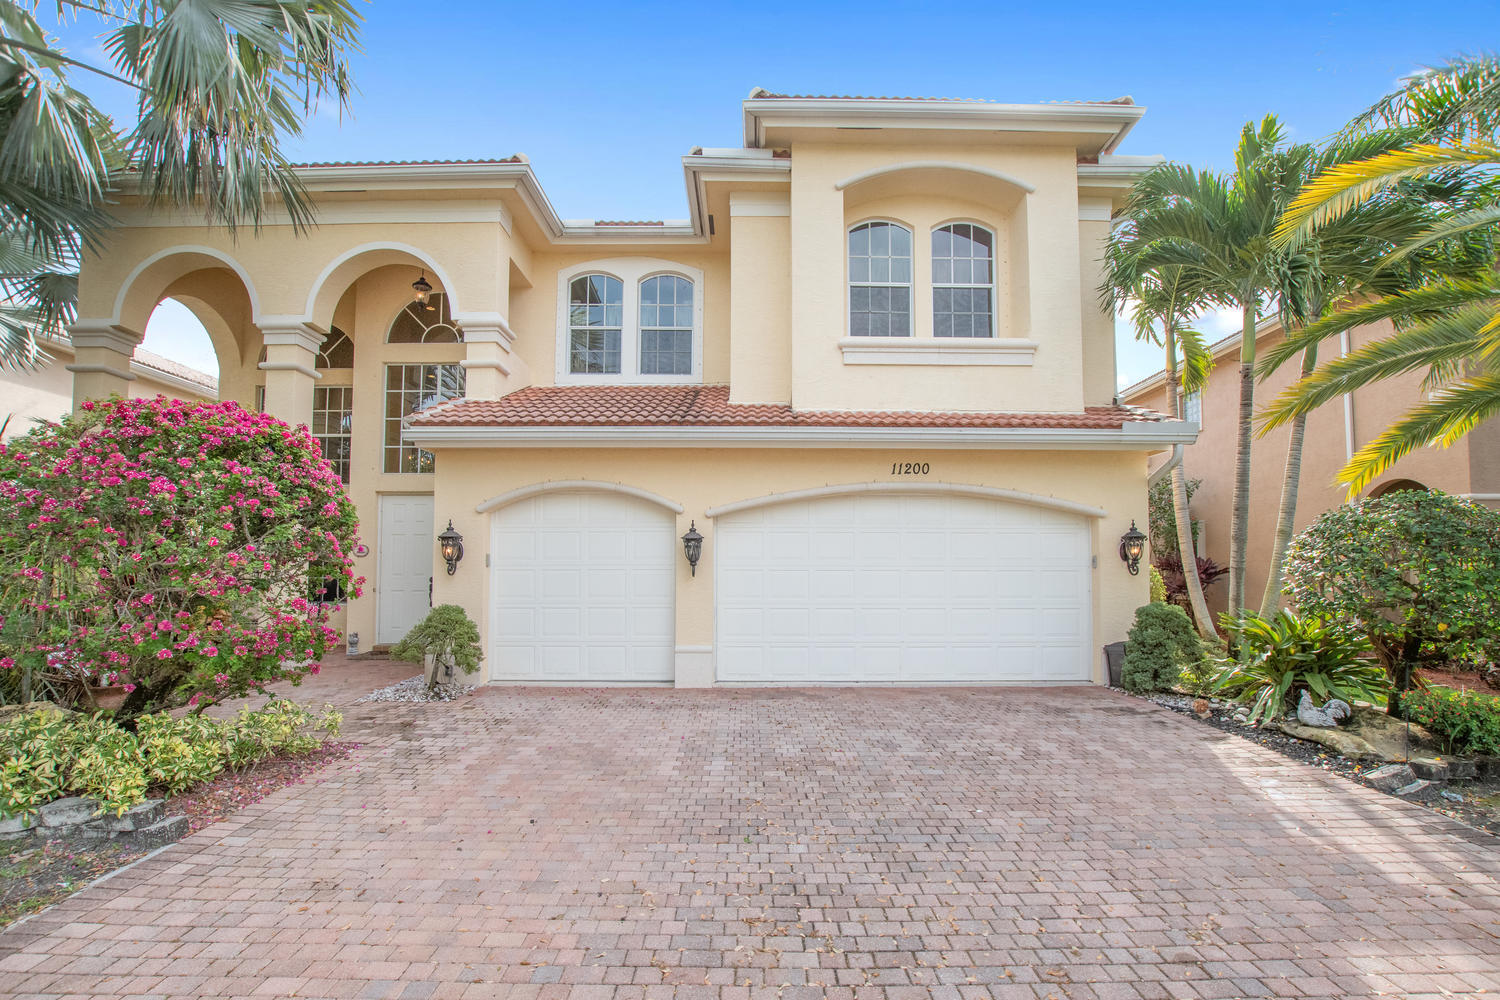 11200 Brandywine Lake Way Boynton Beach, FL 33473